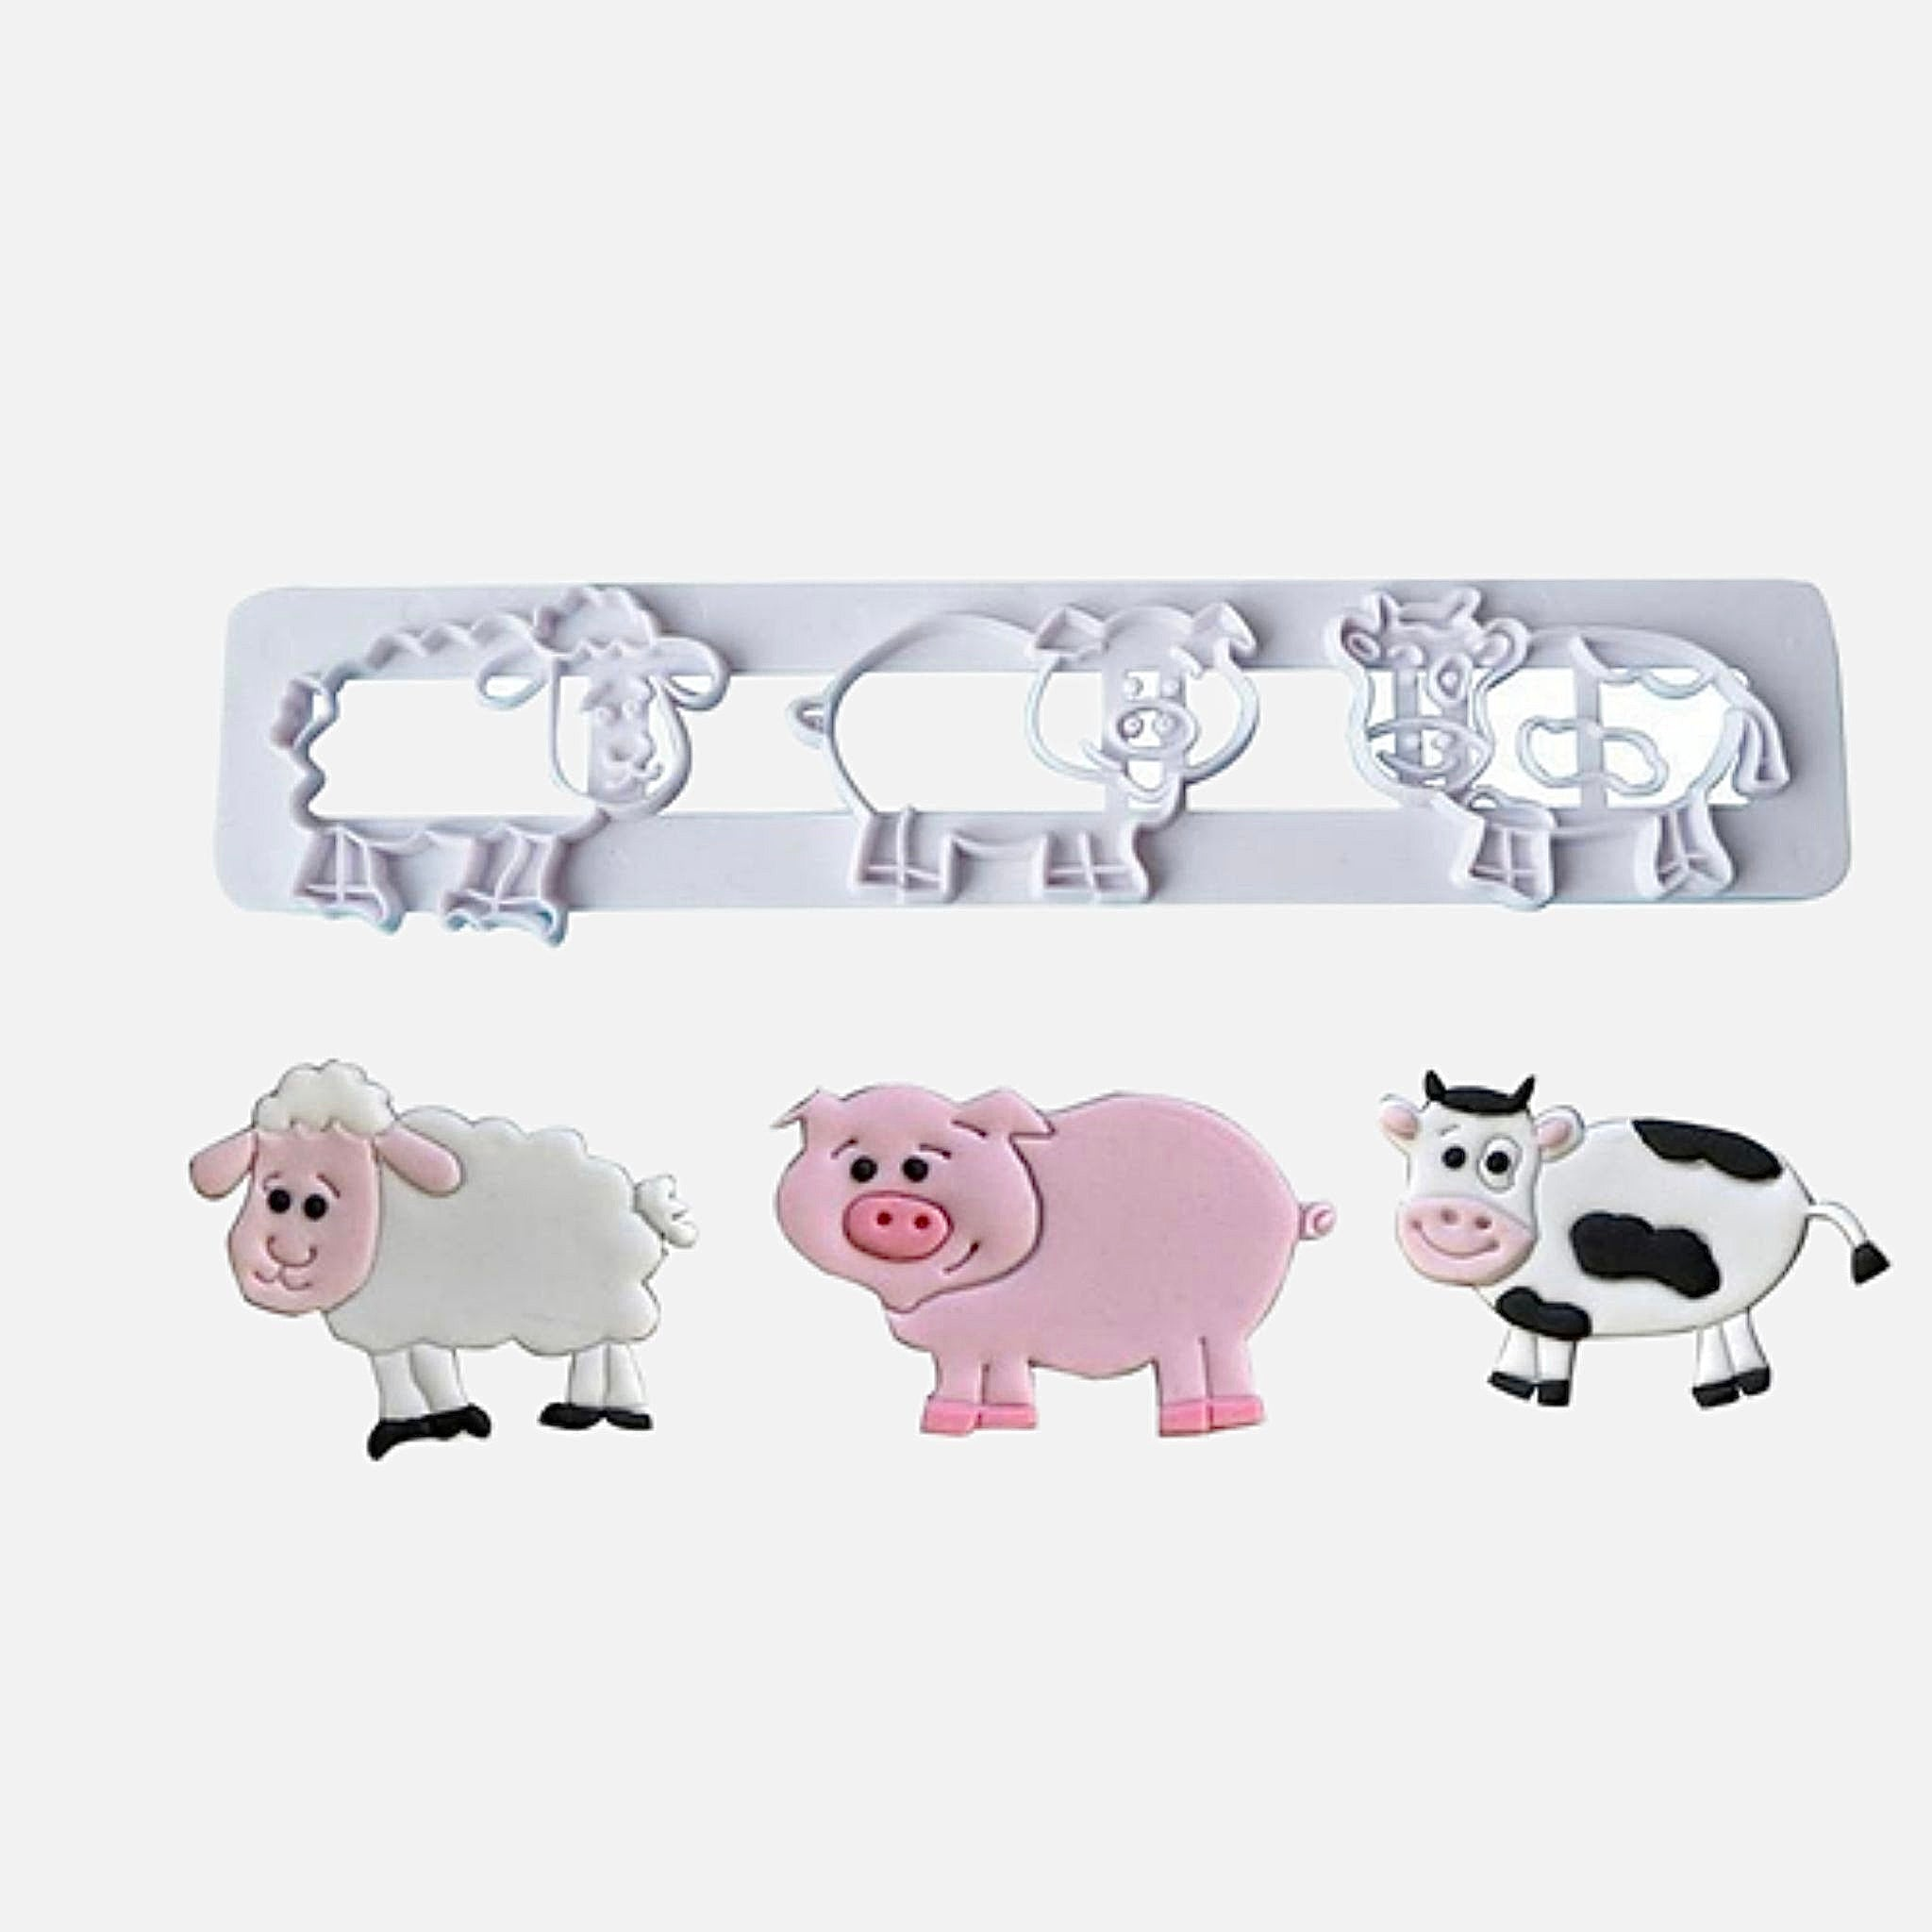 Biscuit Mold       Cute farm animal cutting mold pig sheep cow cartoon DIY fondant cake bakeware molds